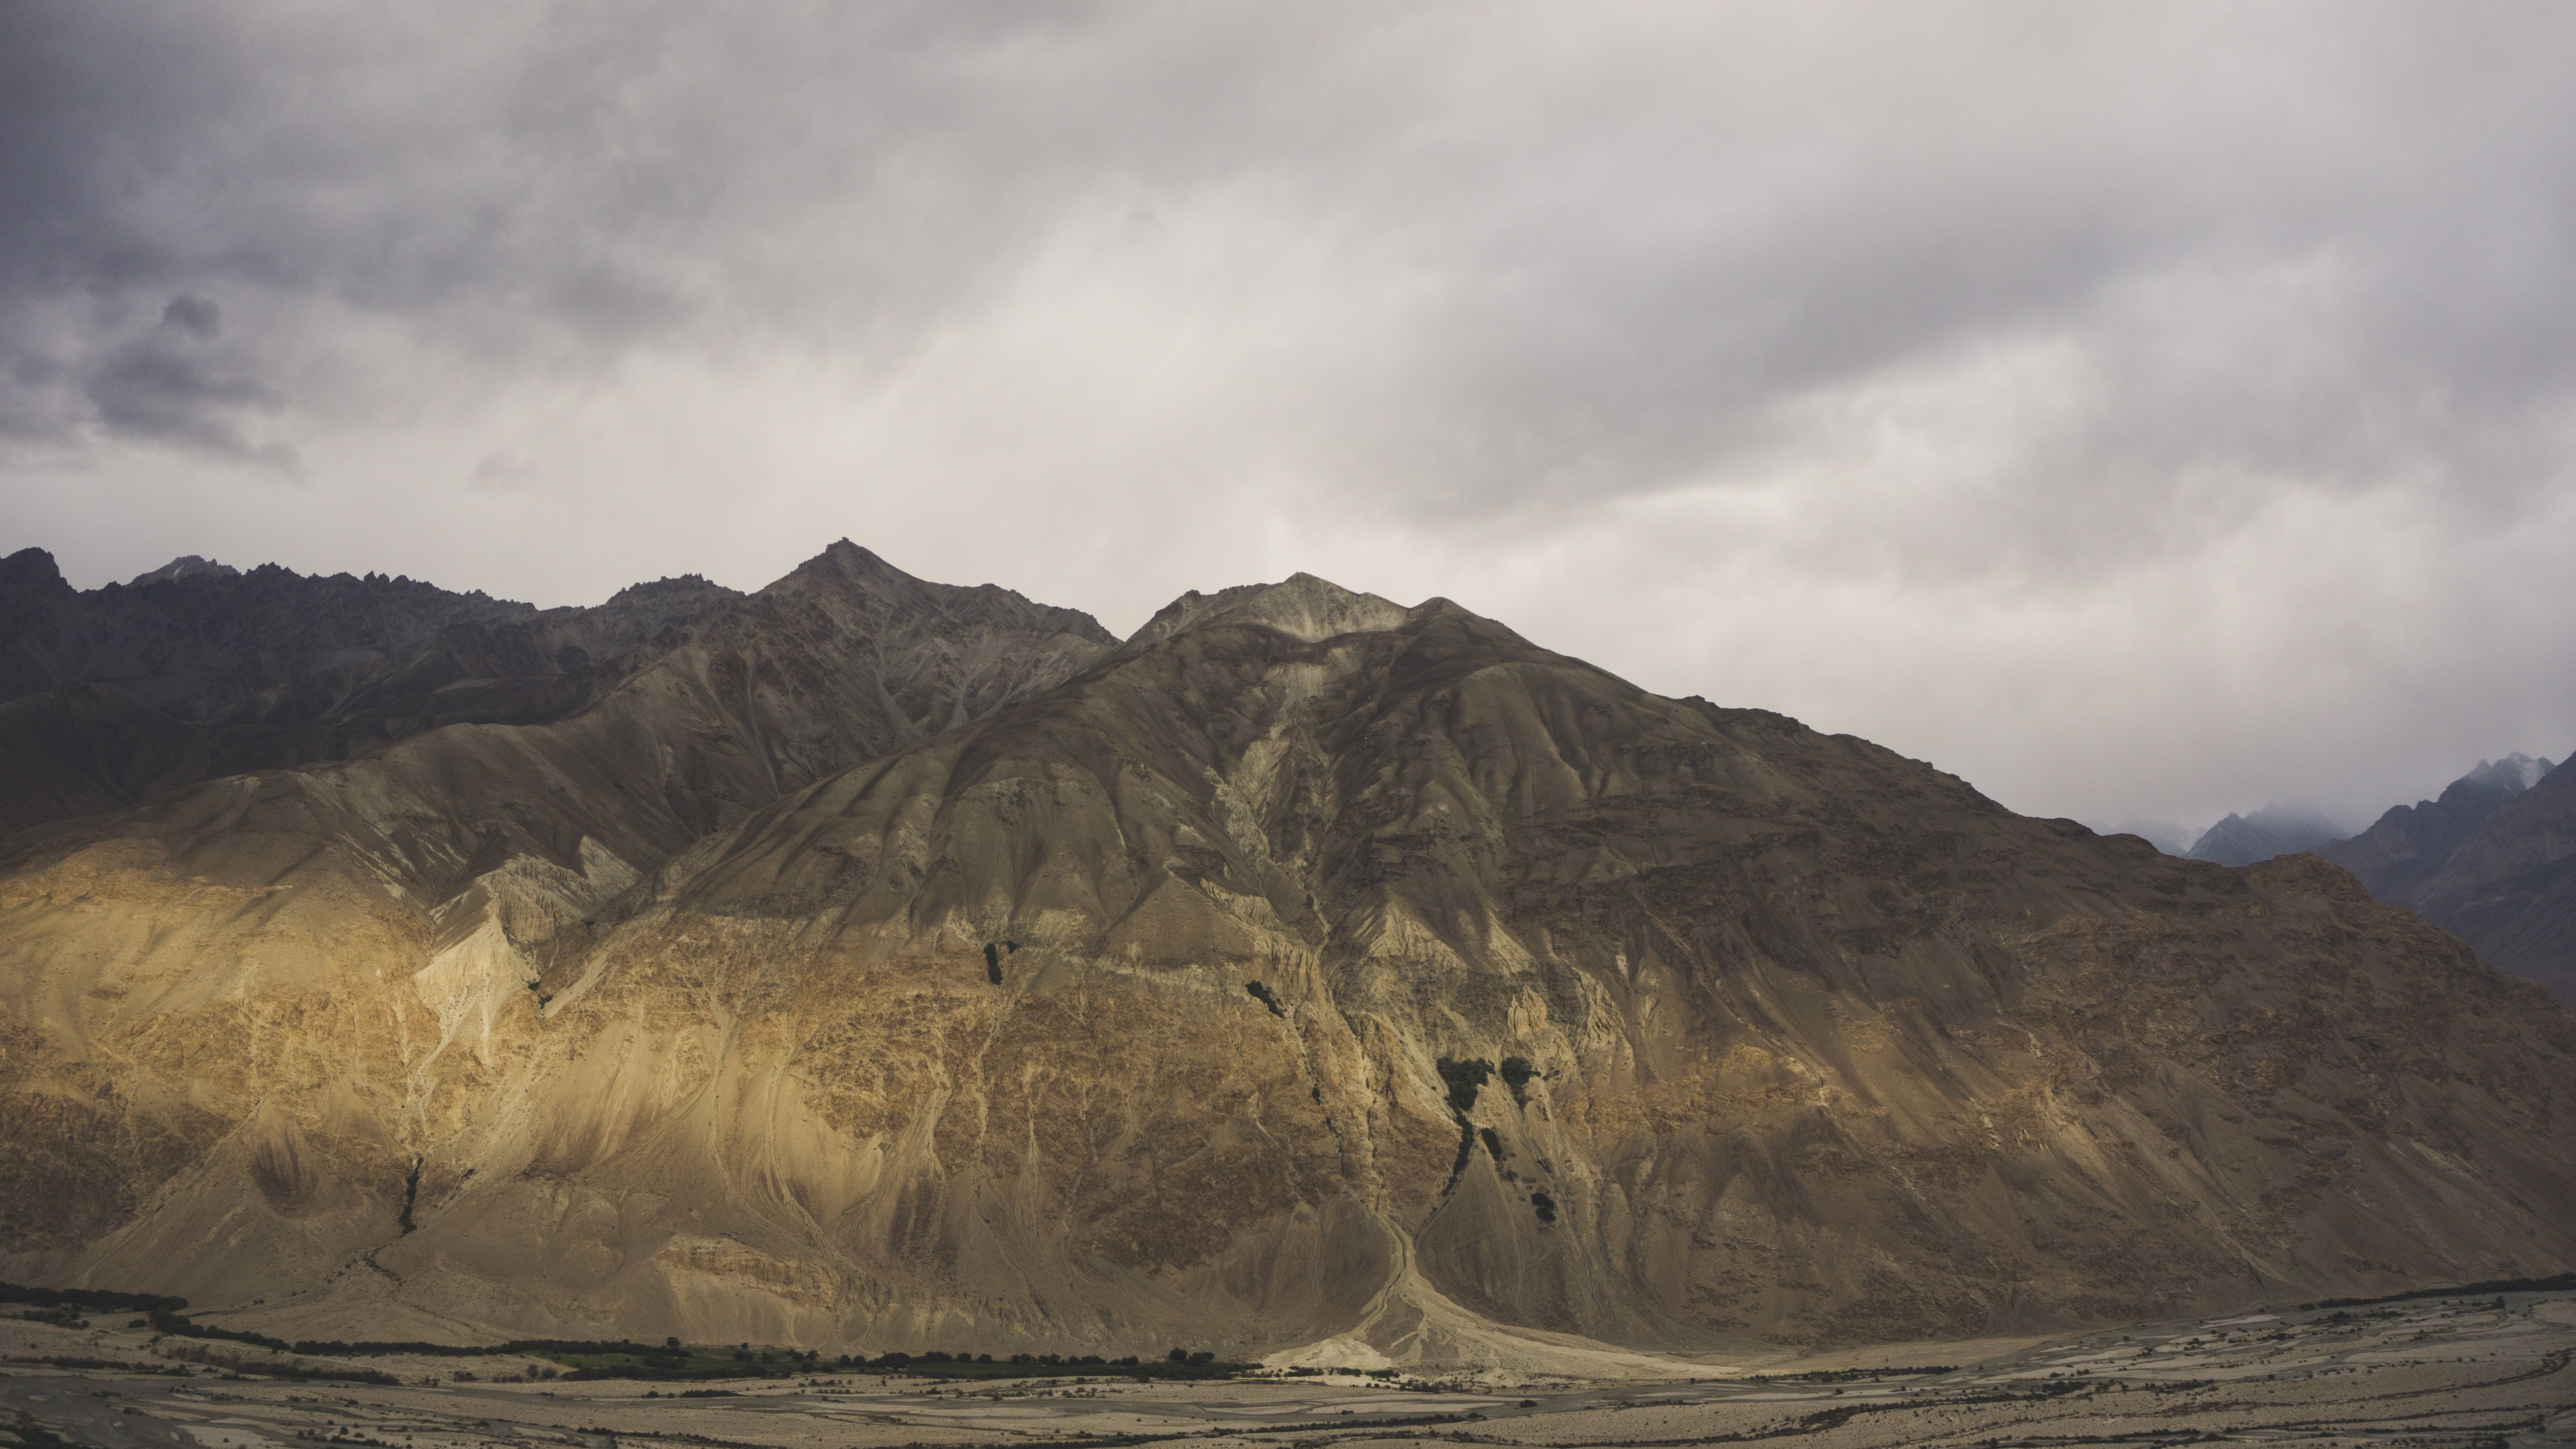 6000x3376 750+ Afghanistan Pictures   Download Free Images on Unsplash